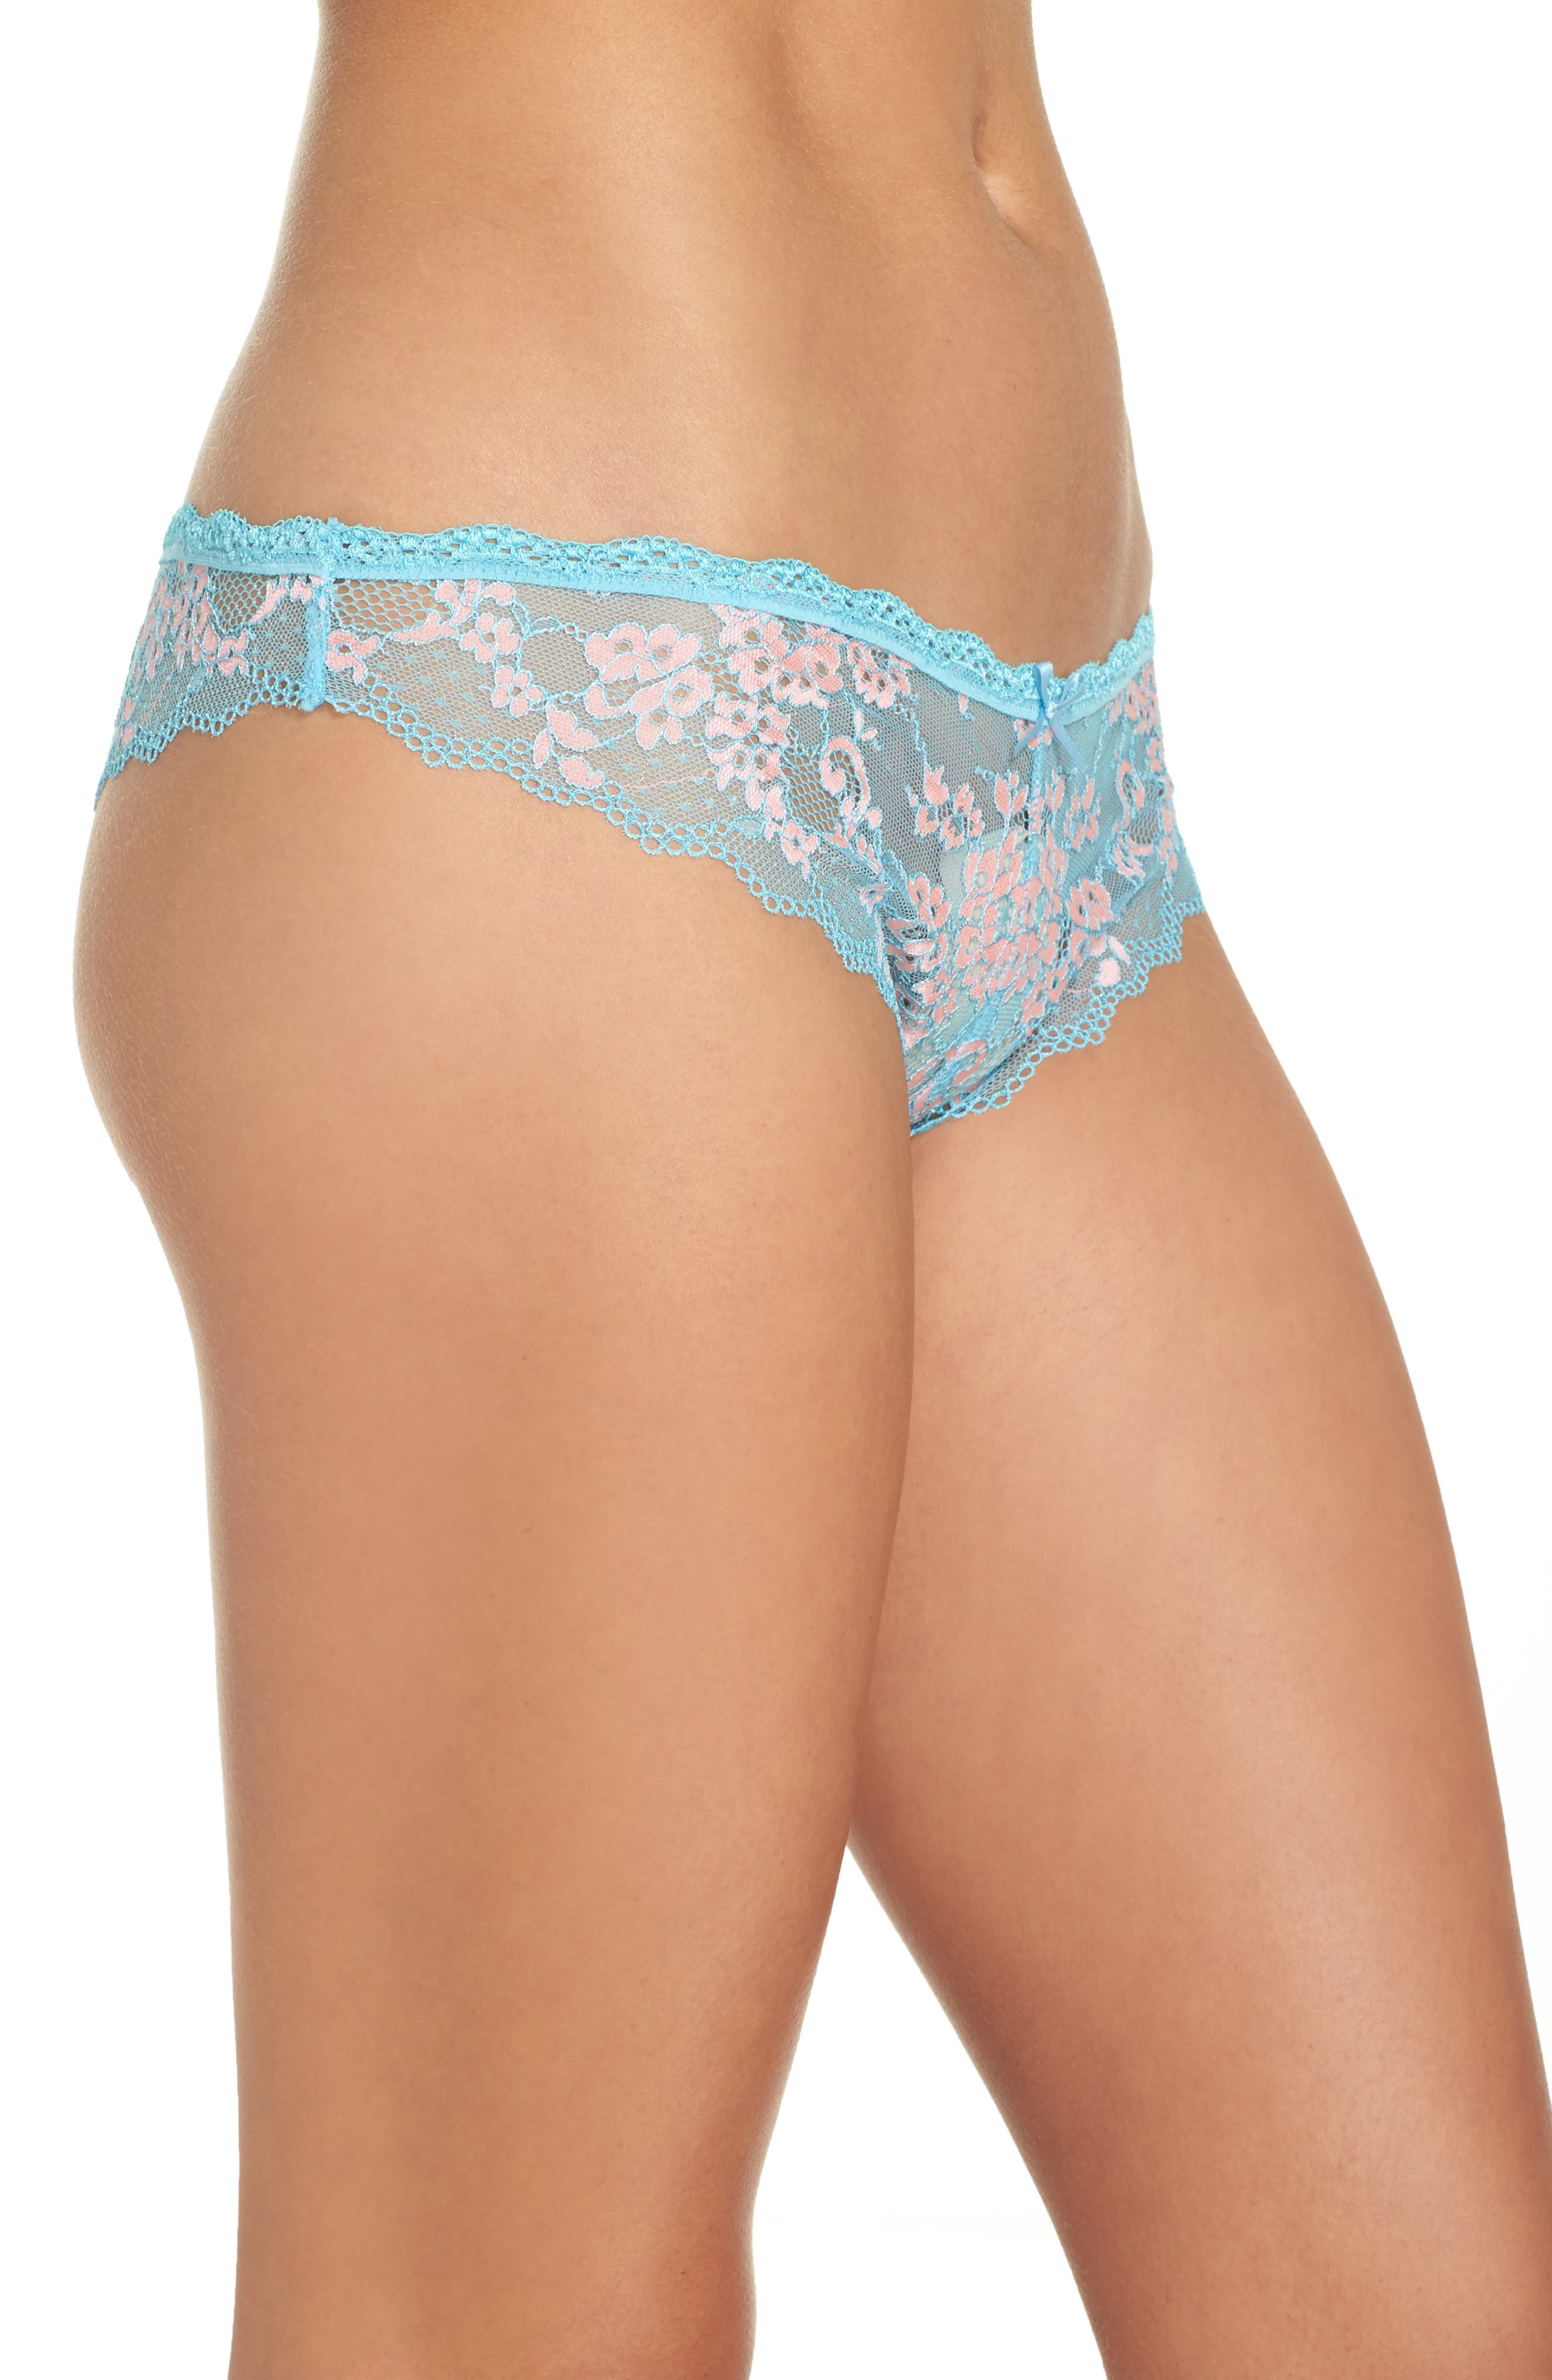 Camellia Lace Thong,                             Alternate thumbnail 3, color,                             405